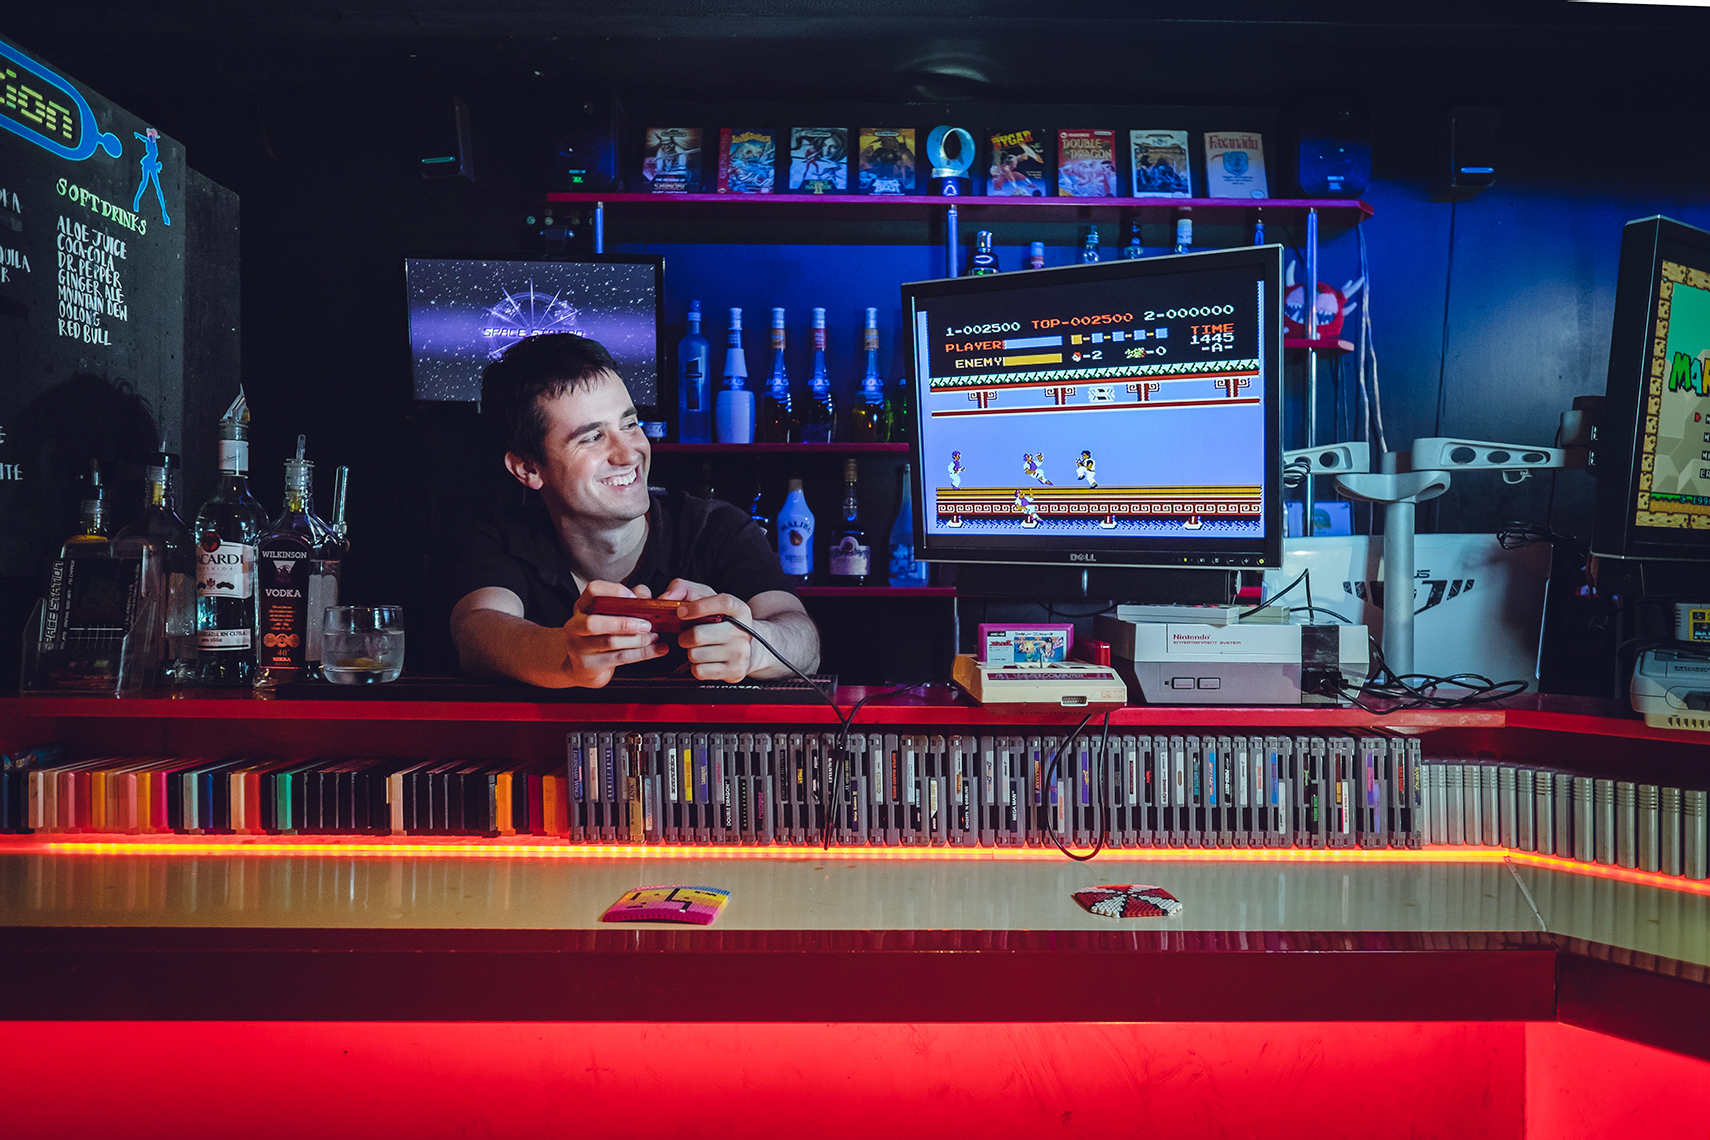 Matt Thurber - Proprietor, Bar Space Station